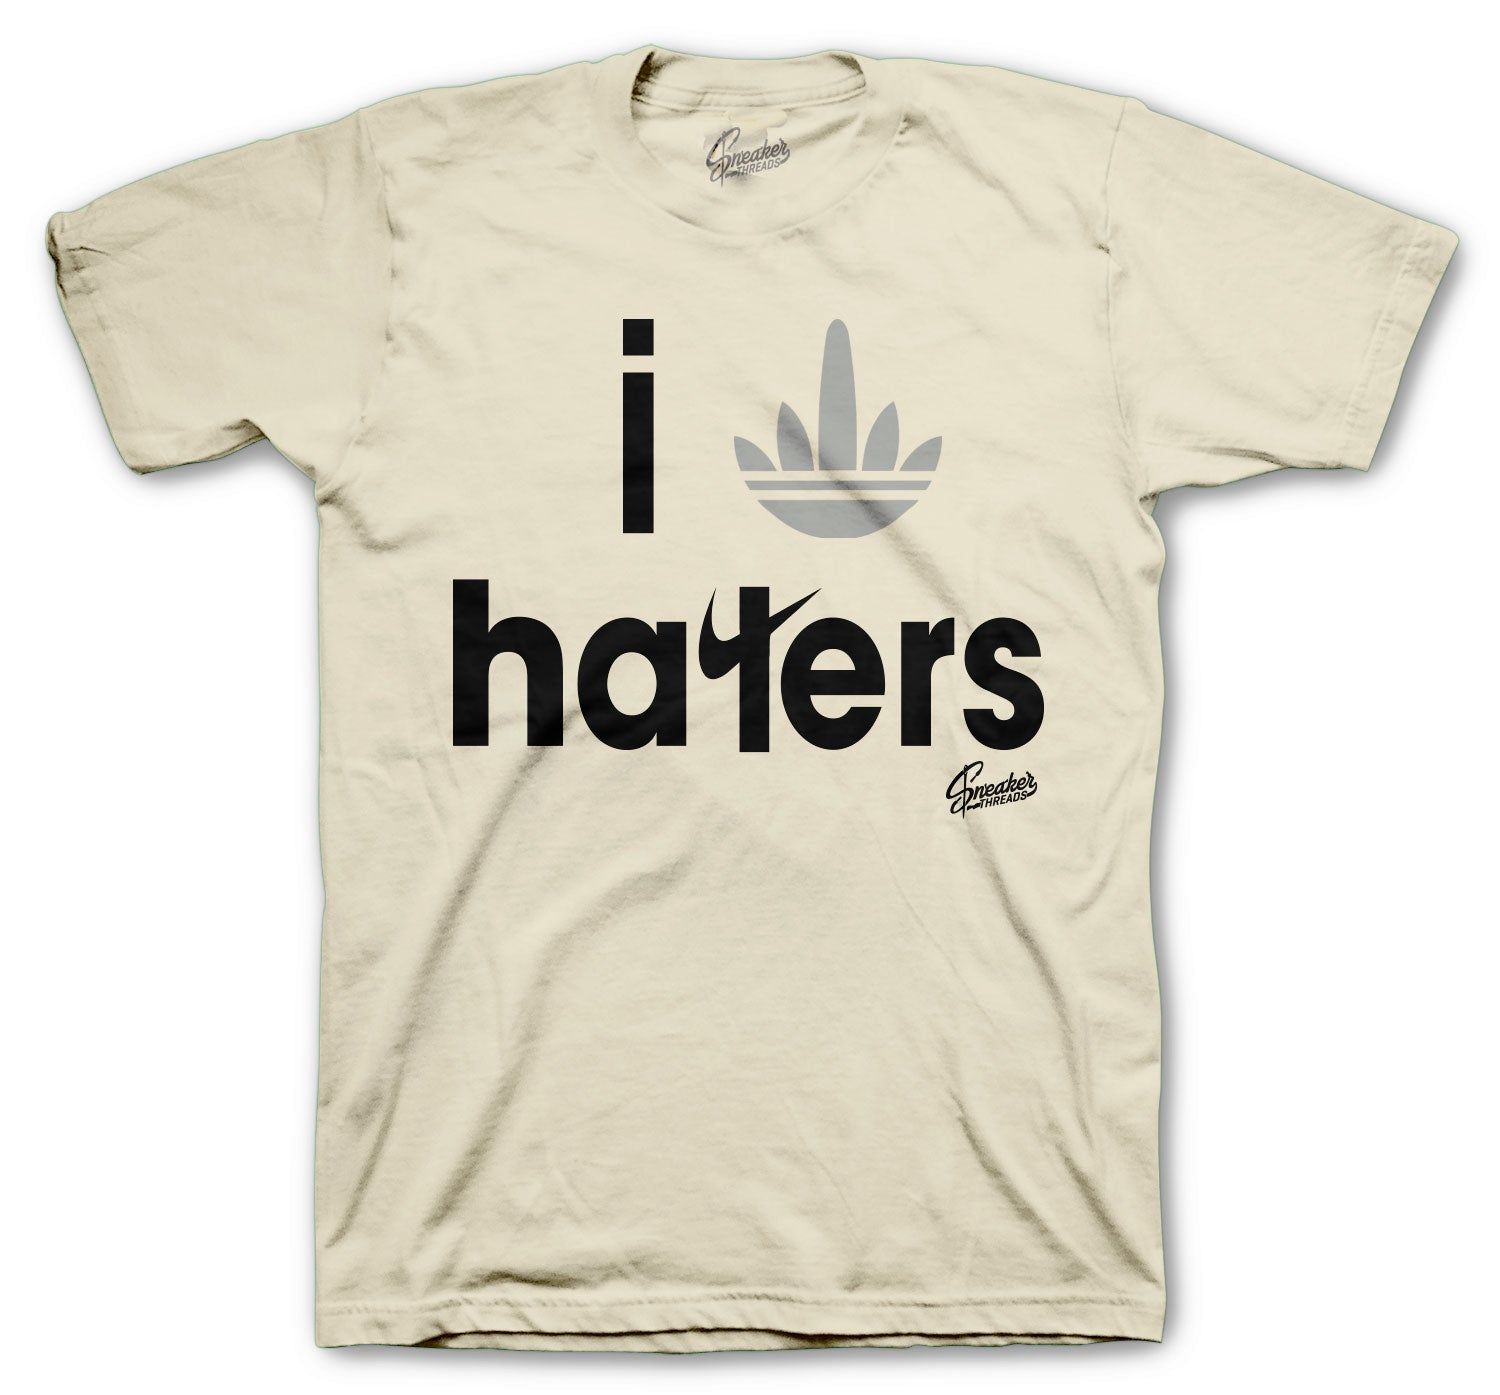 Yeezy Natural Shirt - I Stripe Haters - Natural